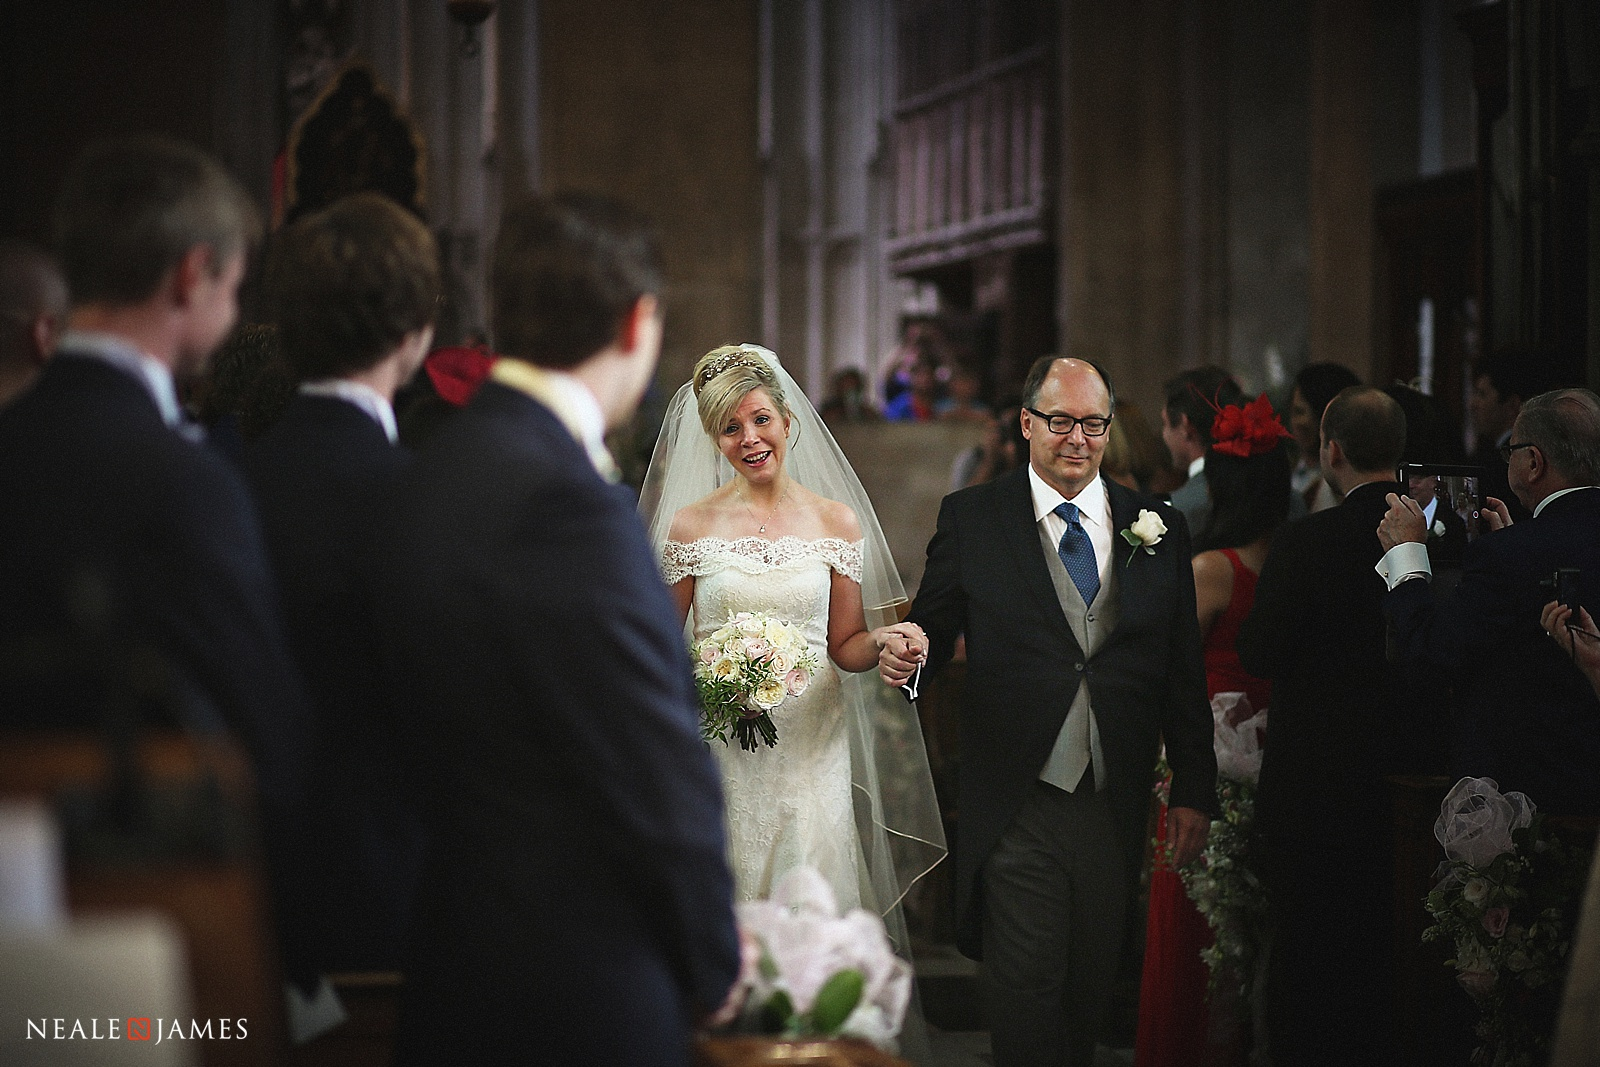 A father walks her daughter down the aisle in this colour photograph